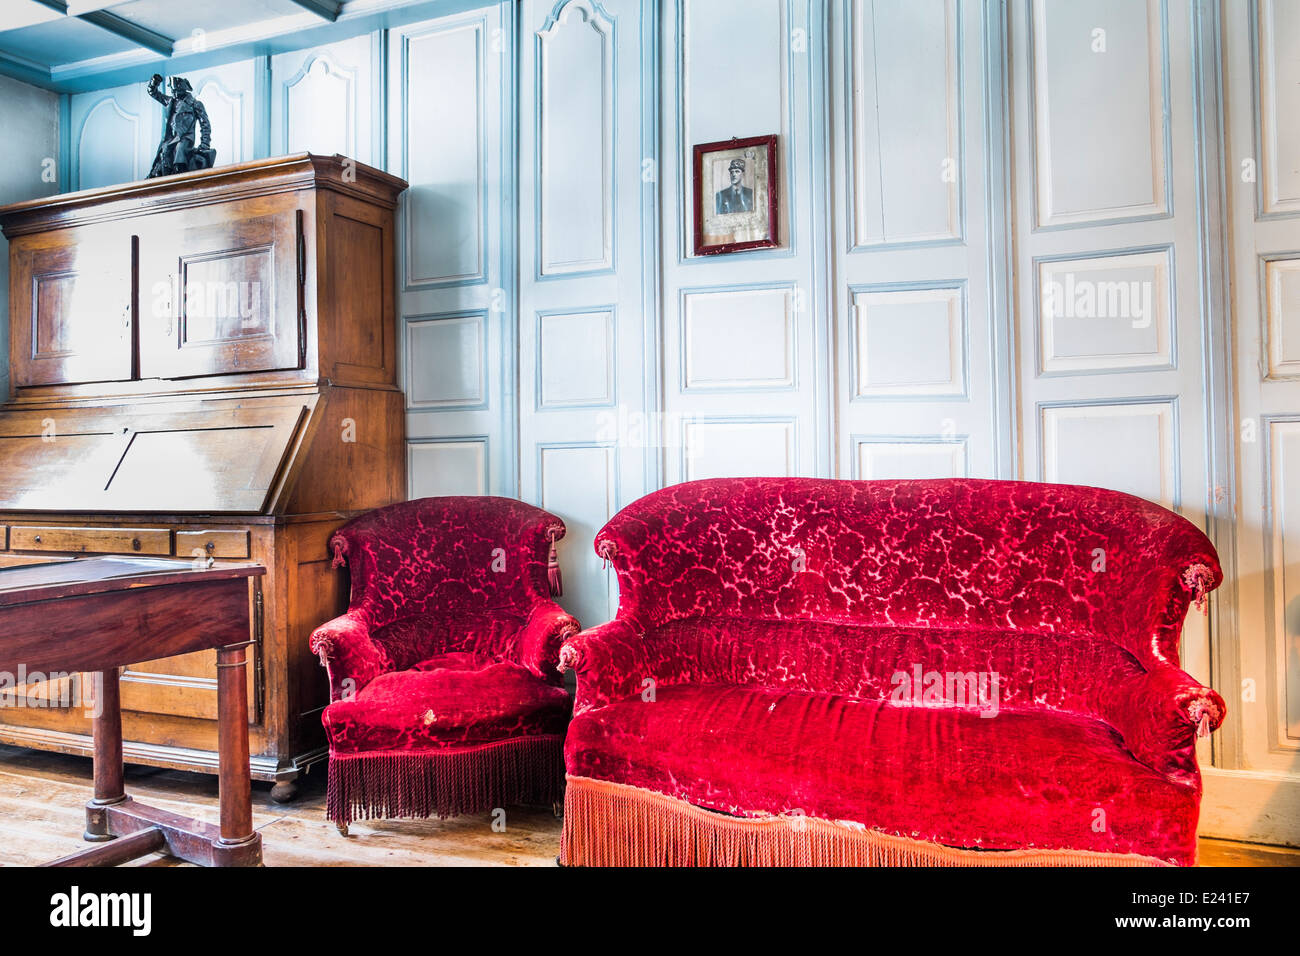 historic french living room with red chair and couch, on the wall a portrait photograph of general de gaulle, écomusée - Stock Image